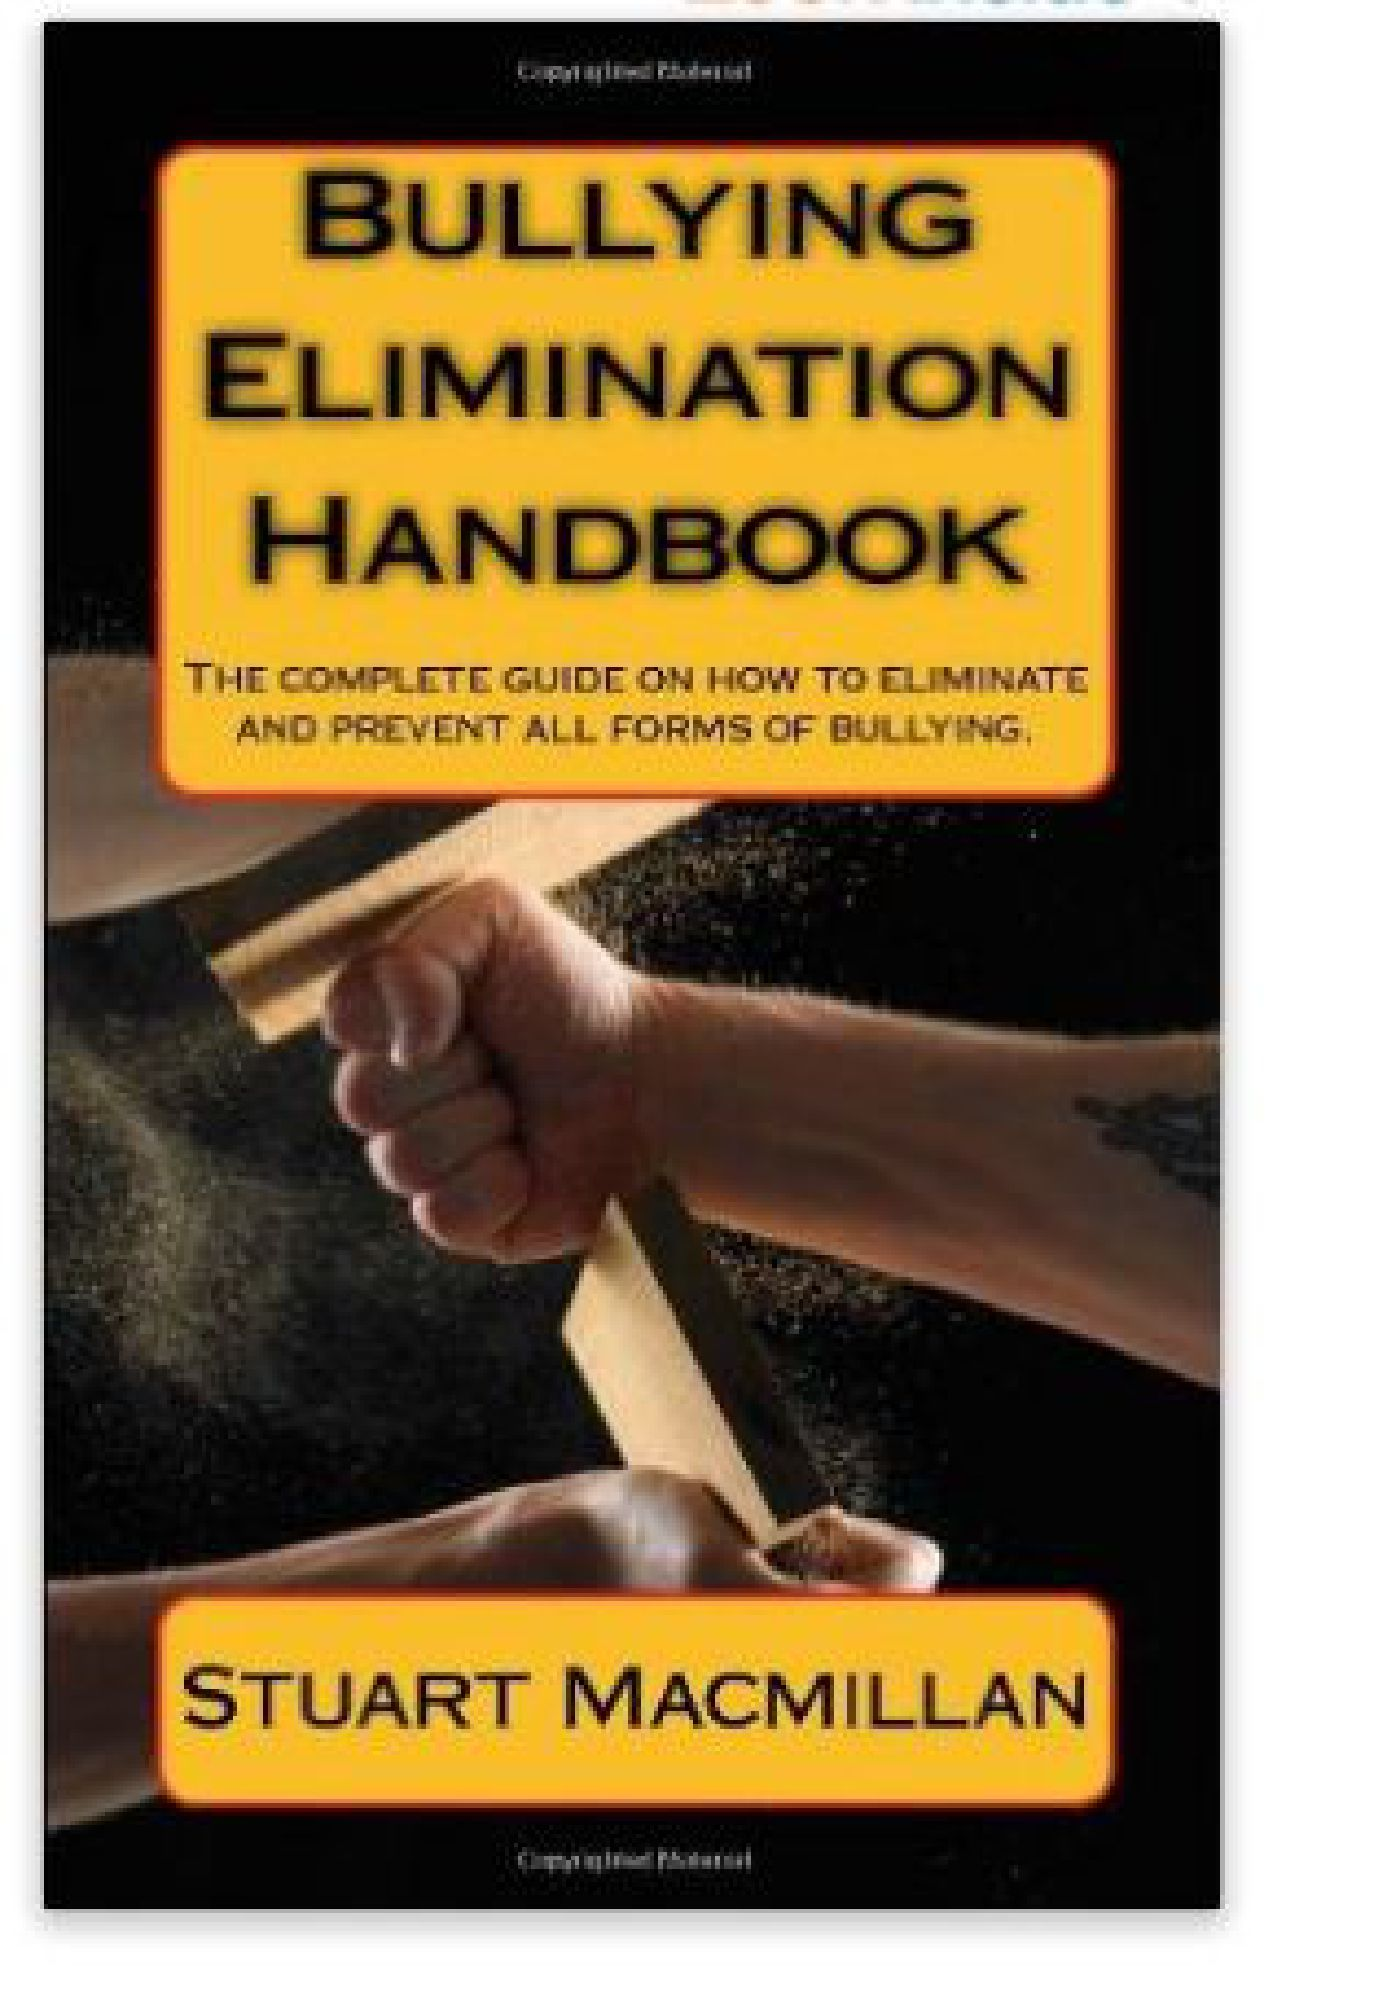 Bullying Elimination Handbook